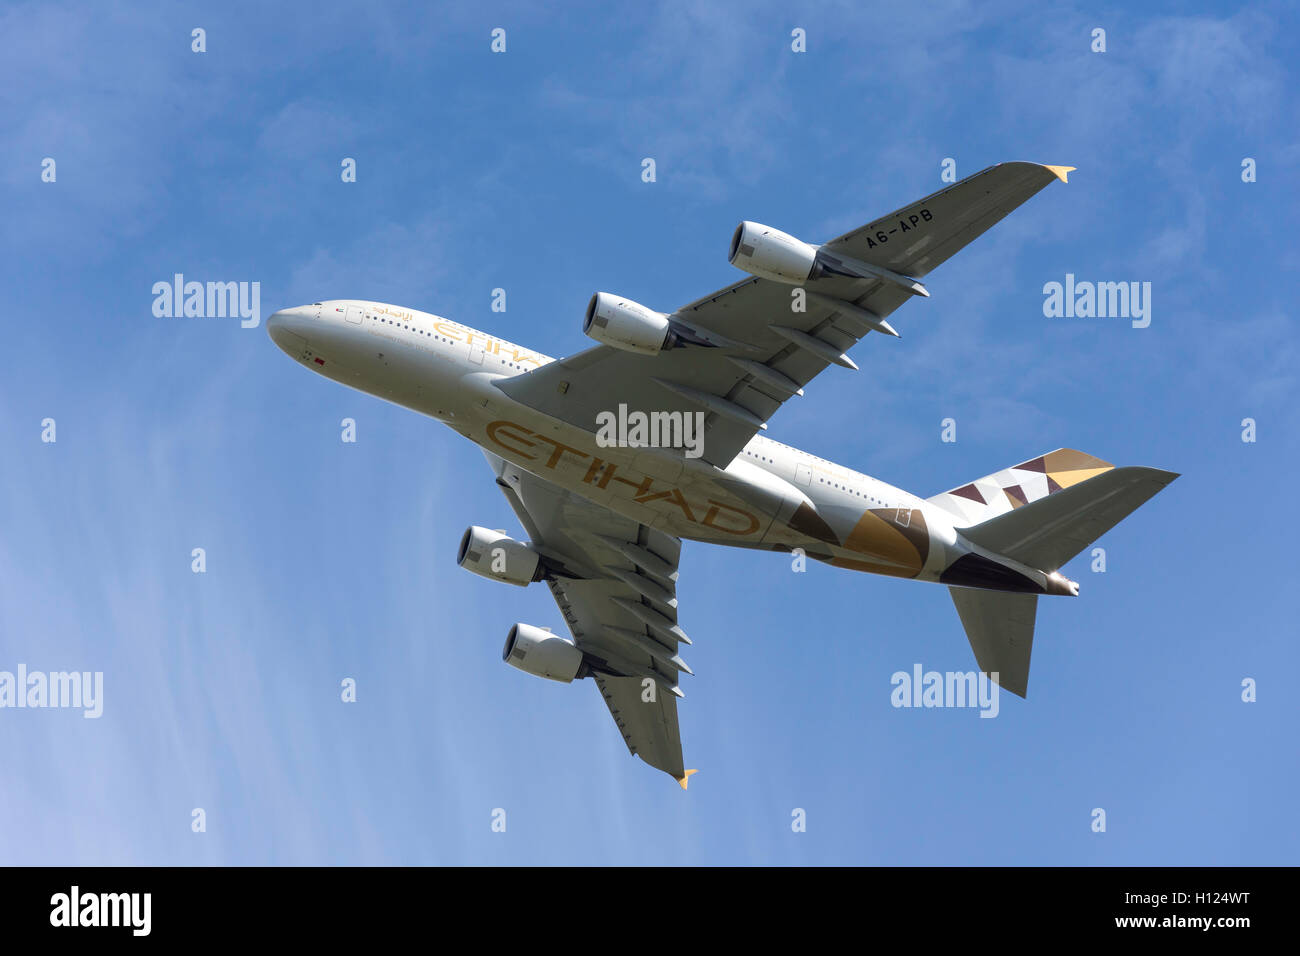 Etihad Airways Airbus A380-861 taking off from Heathrow Airport, Greater London, England, United Kingdom - Stock Image